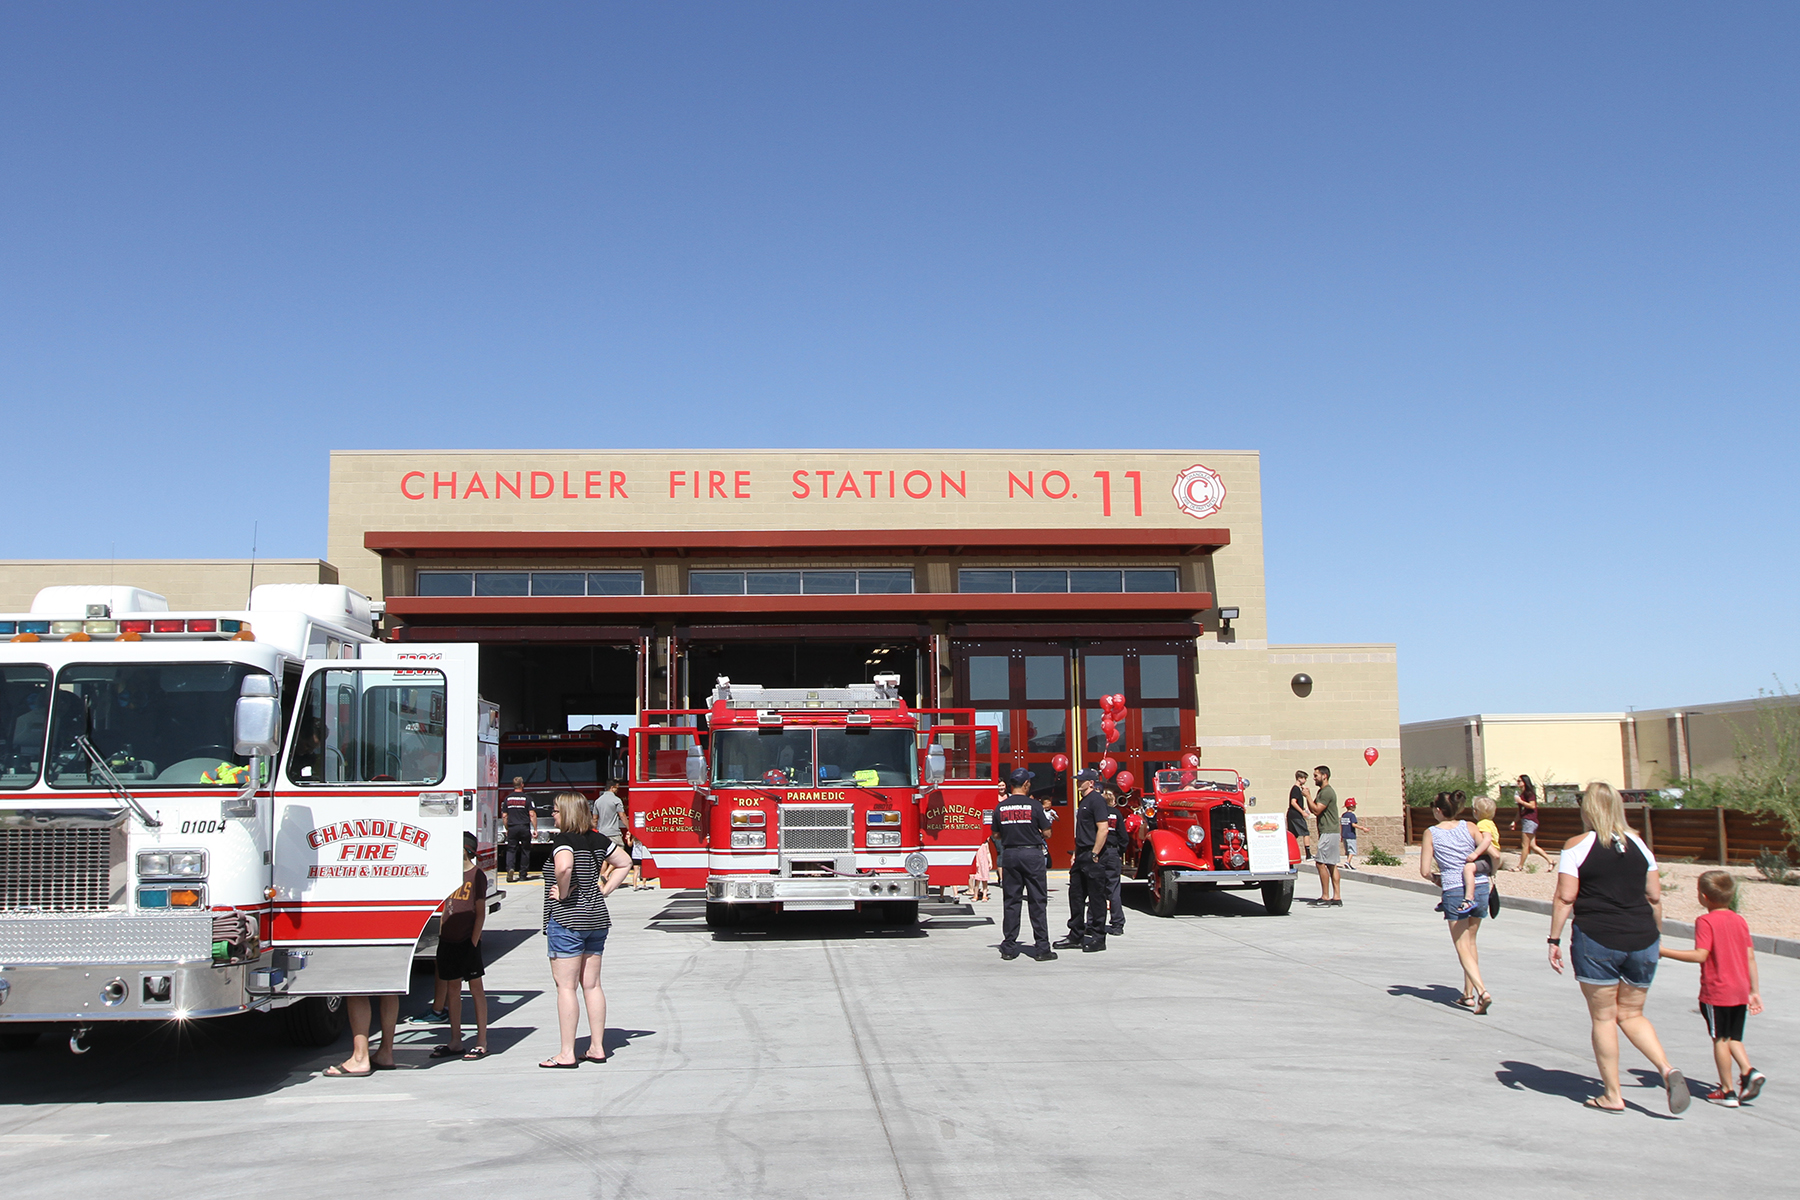 Chandler Fire Station 11.jpg